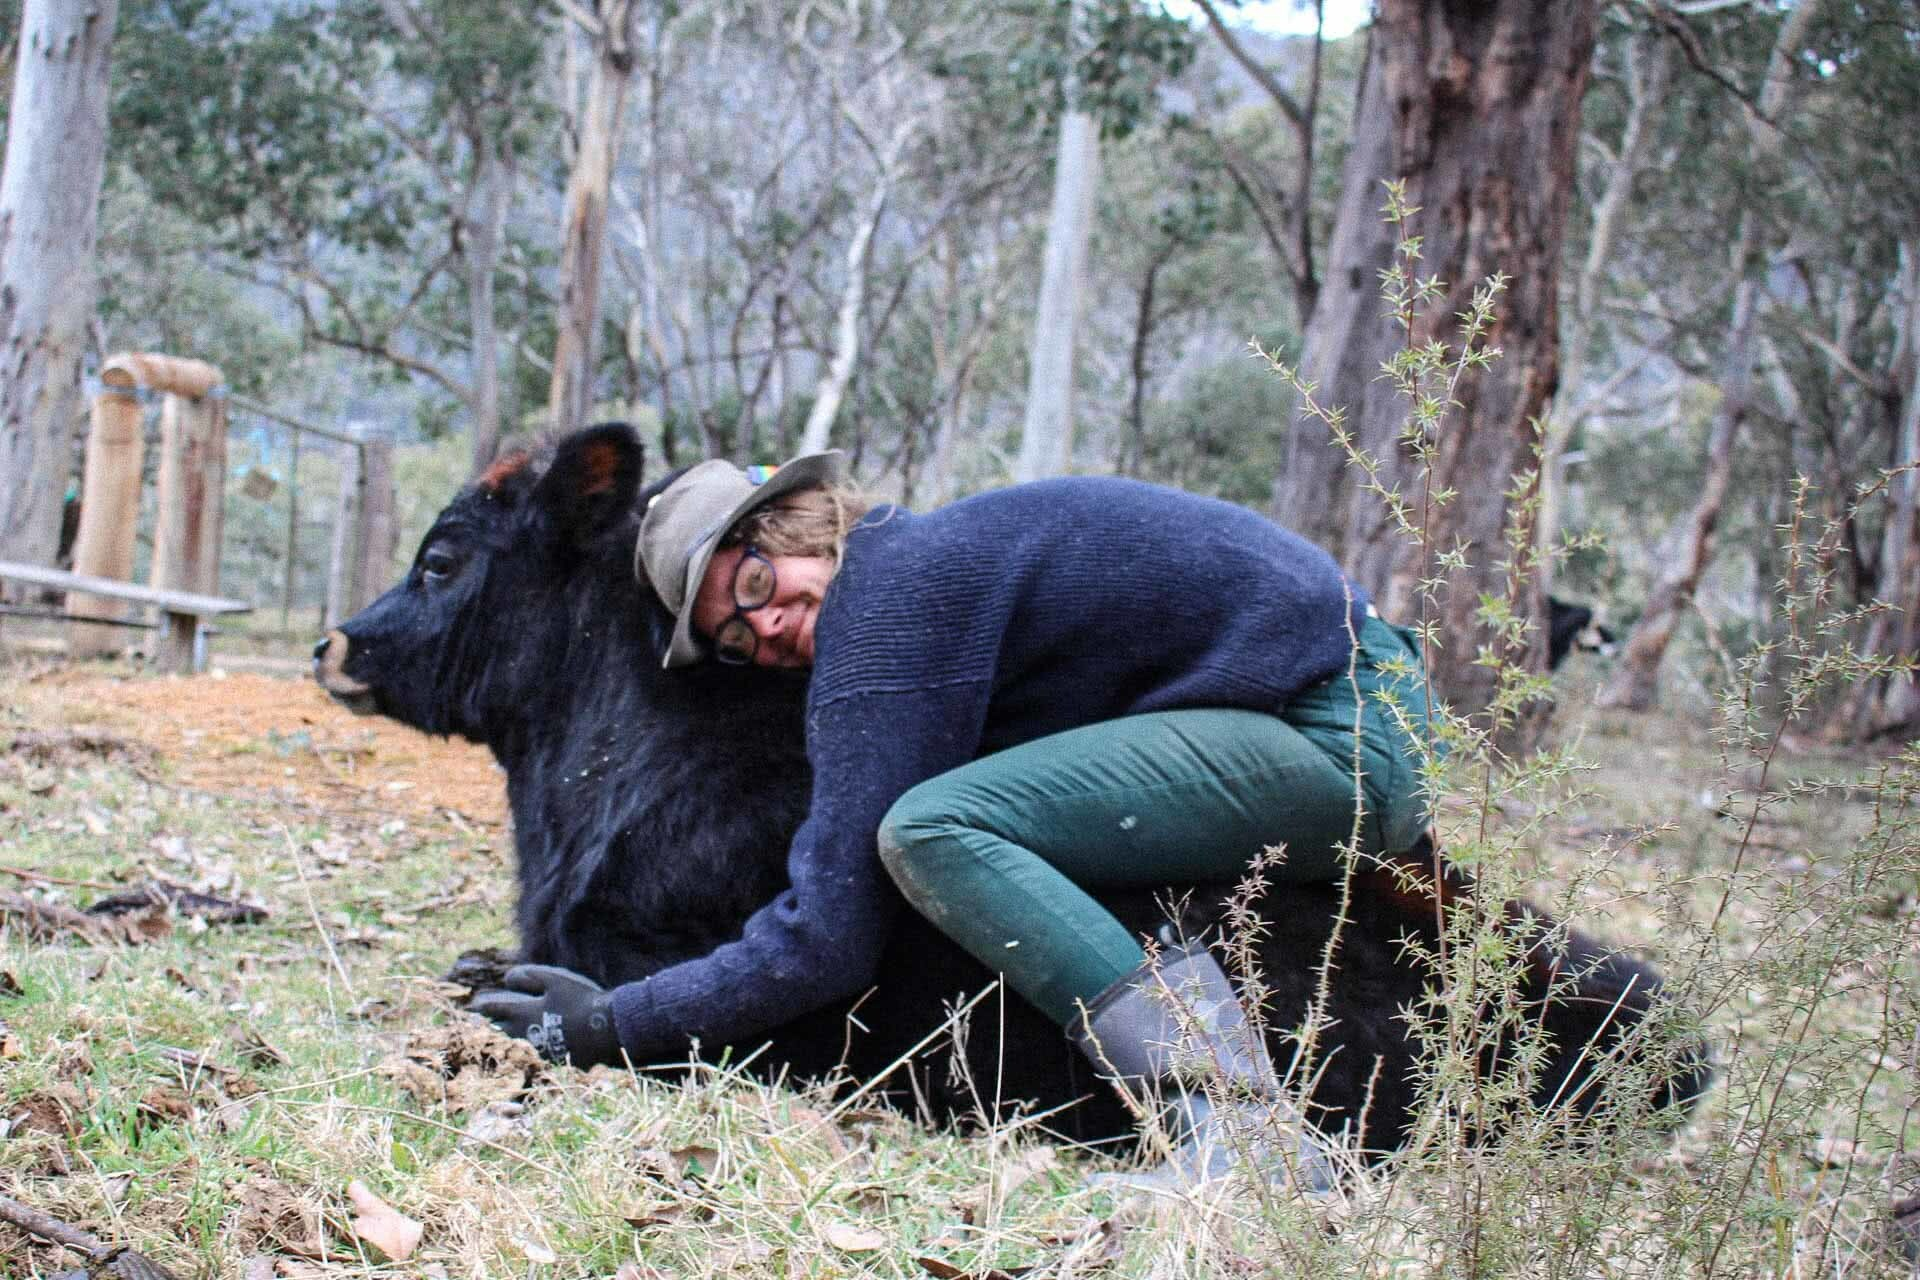 Cuddling calfies, 7 Things I Learned Living Without Technology for a Year, photo by Pippa Salmon, victorian high country